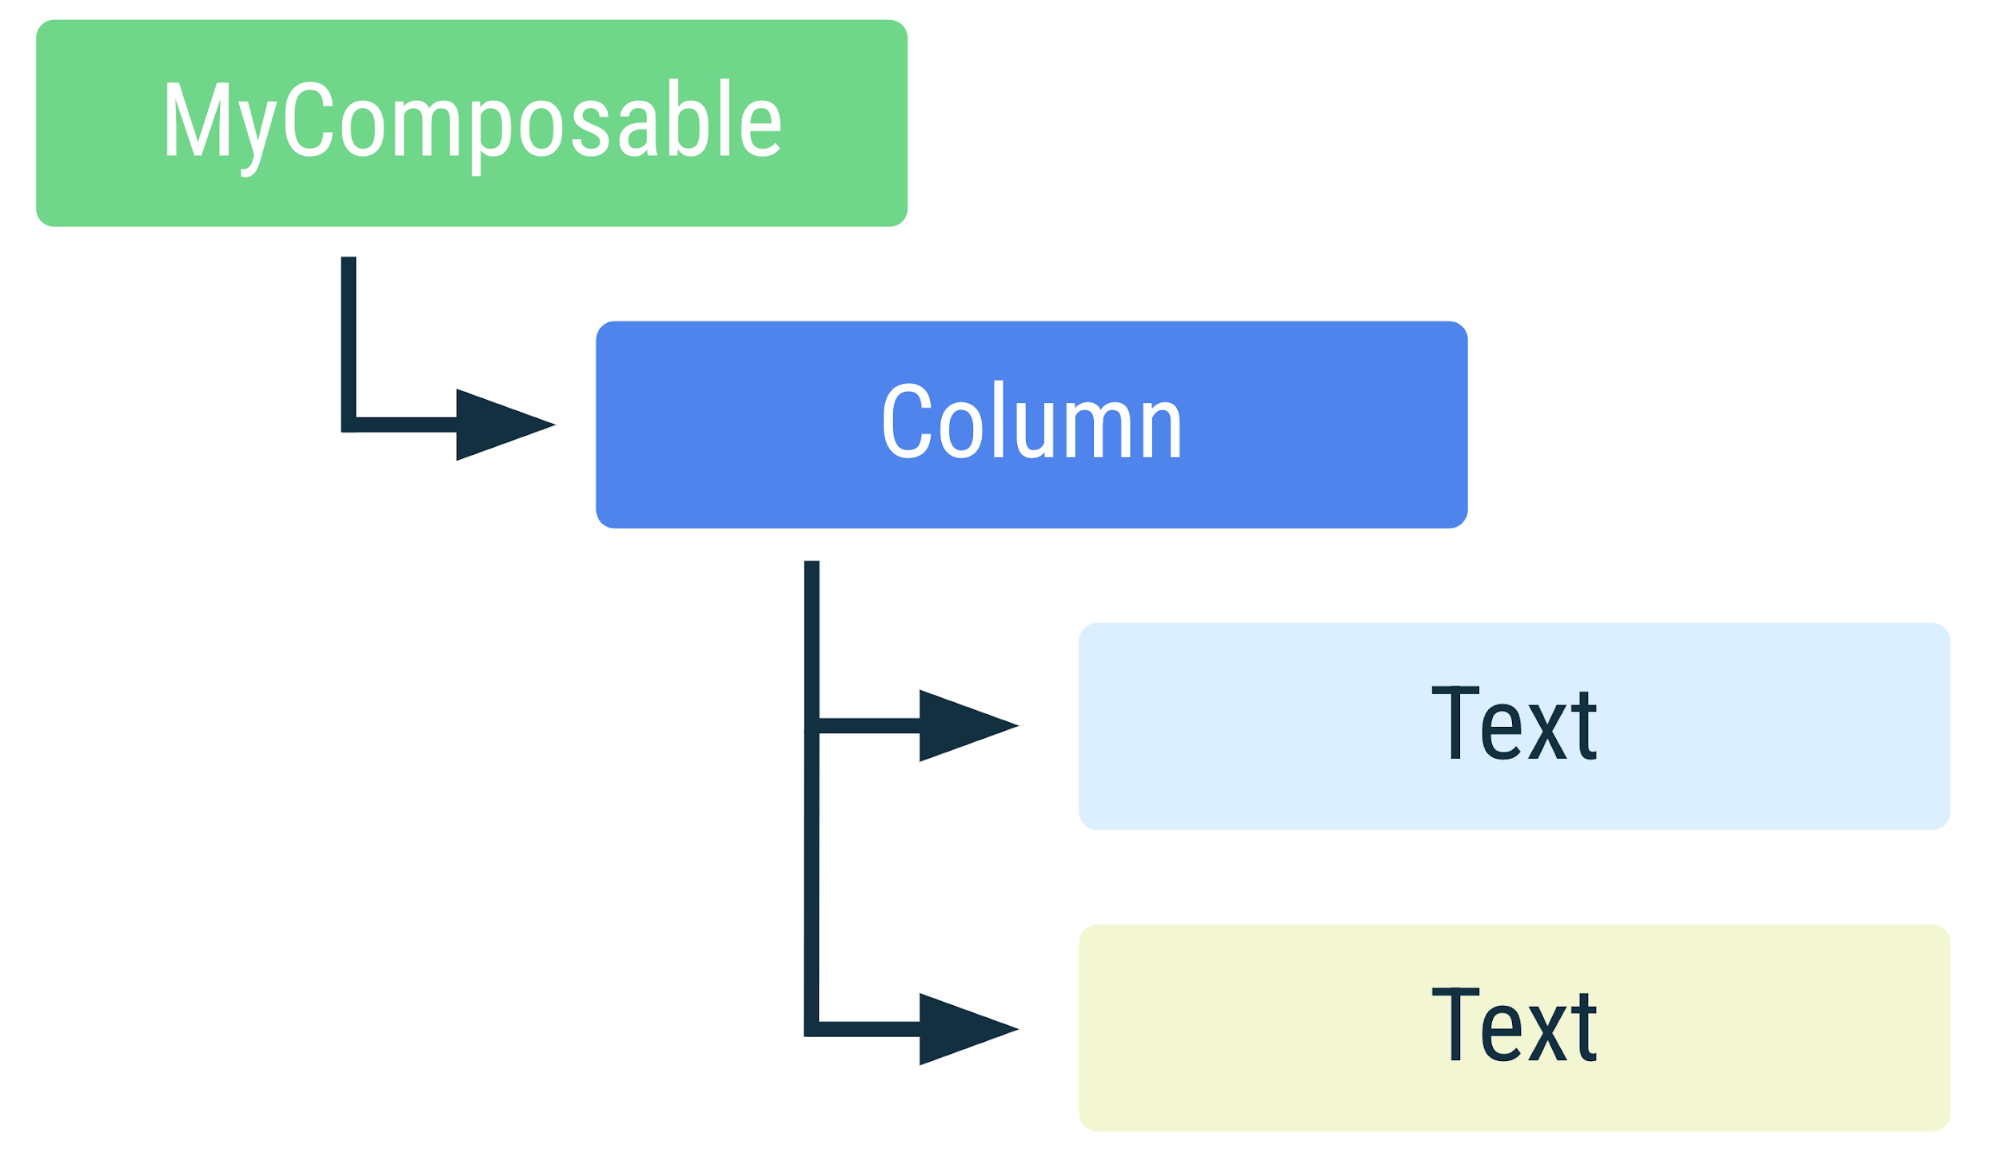 Diagram showing the hierarchical arrangement of the elements in the previous code snippet